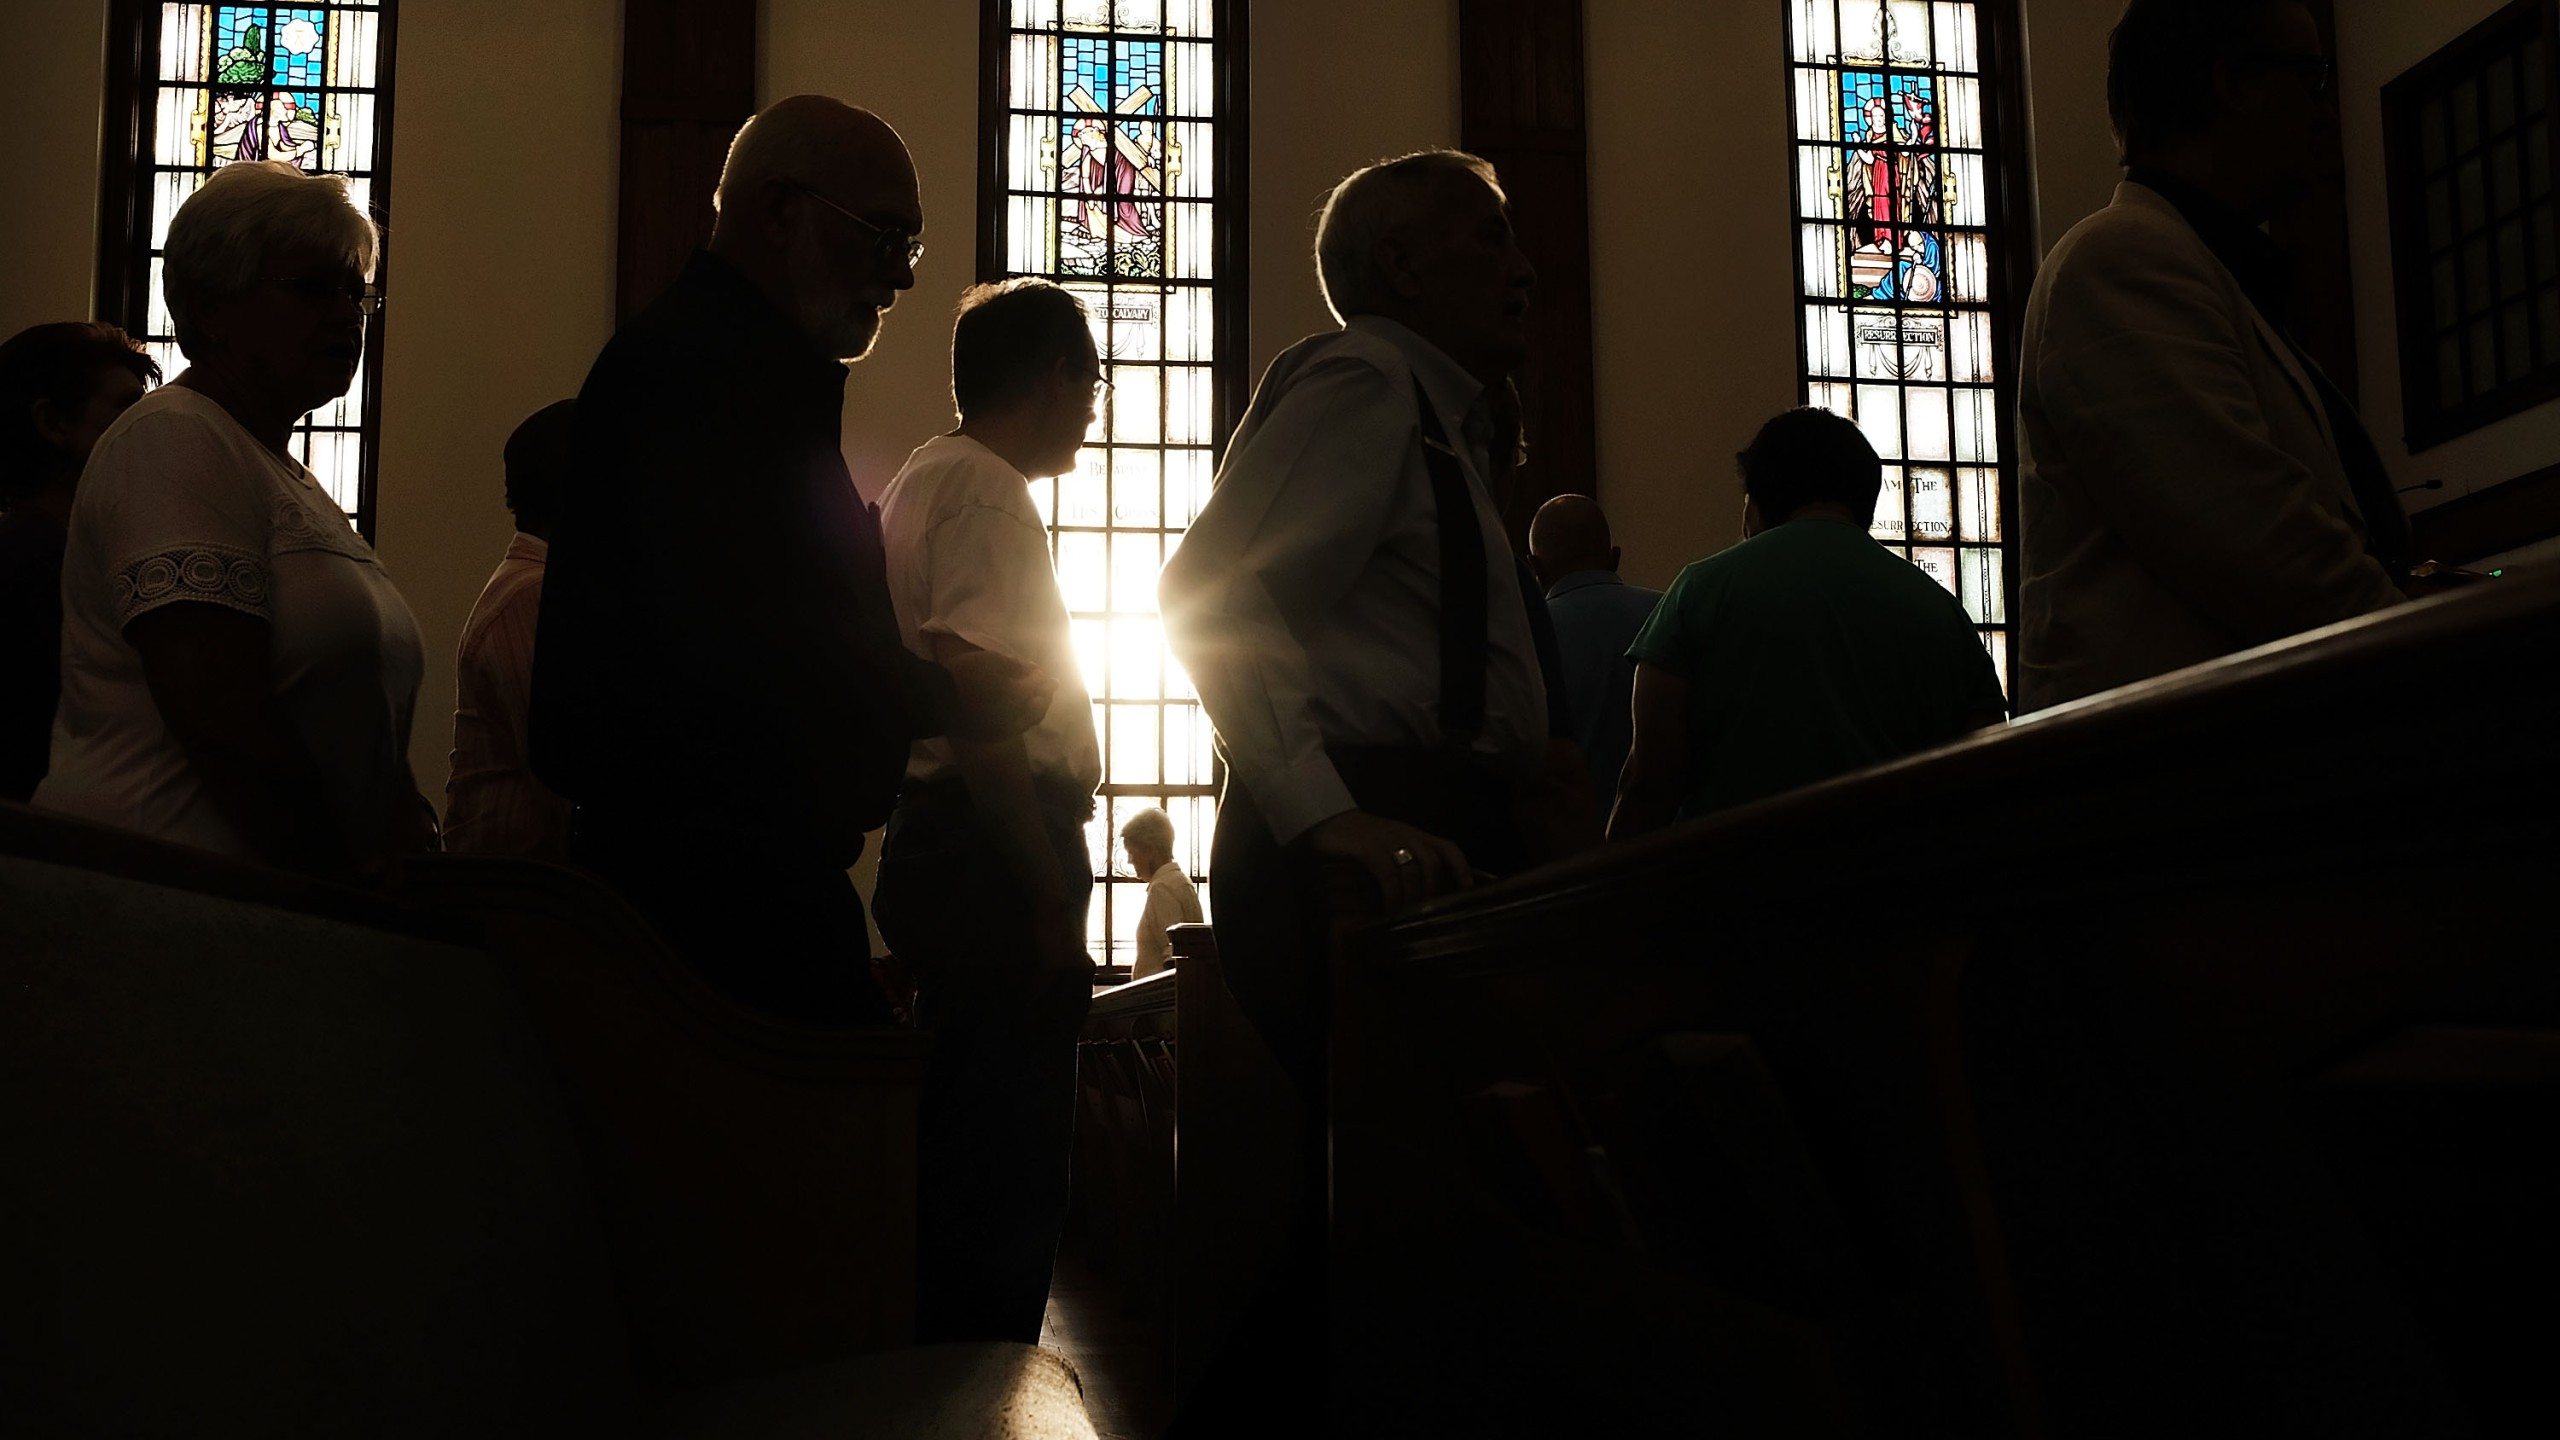 Knoxville residents participate in a service of prayers and hymns for peace in advance of a planned white supremacist rally and counter-protest around a Confederate memorial monument on August 25, 2017 in Knoxville, Tennessee. (Credit: Spencer Platt/Getty Images)